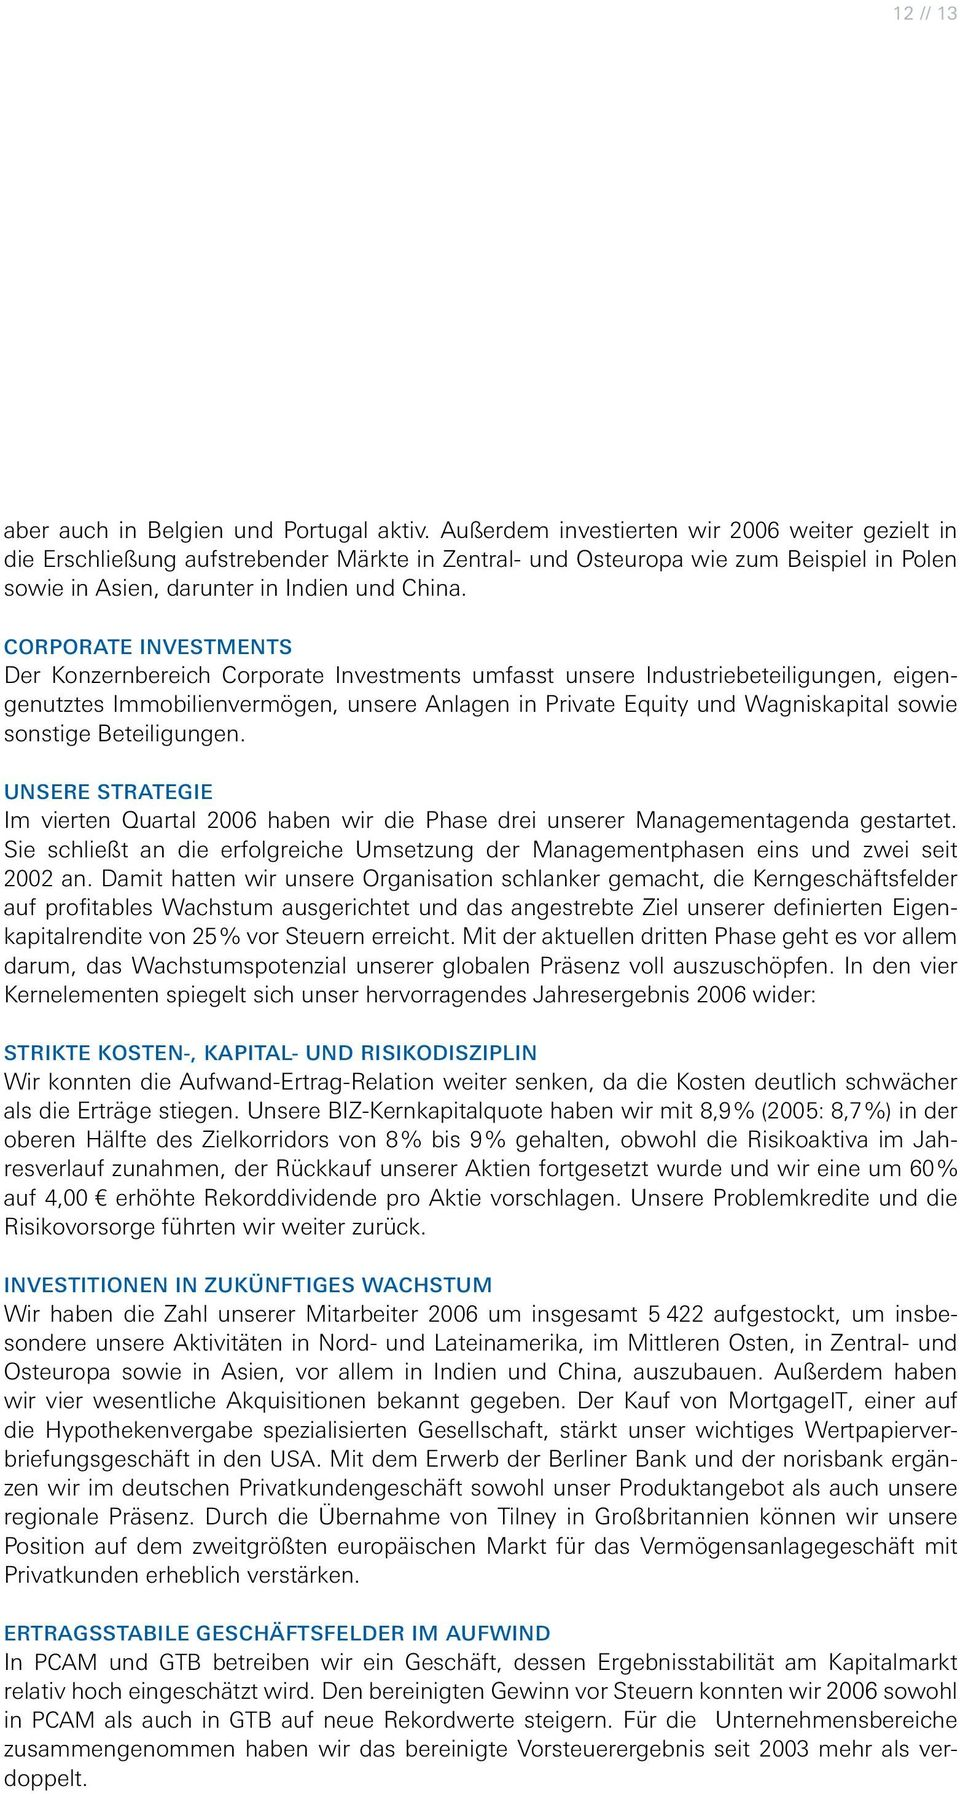 Corporate Investments Der Konzernbereich Corporate Investments umfasst unsere Industriebeteiligungen, eigengenutztes Immobilienvermögen, unsere Anlagen in Private Equity und Wagniskapital sowie